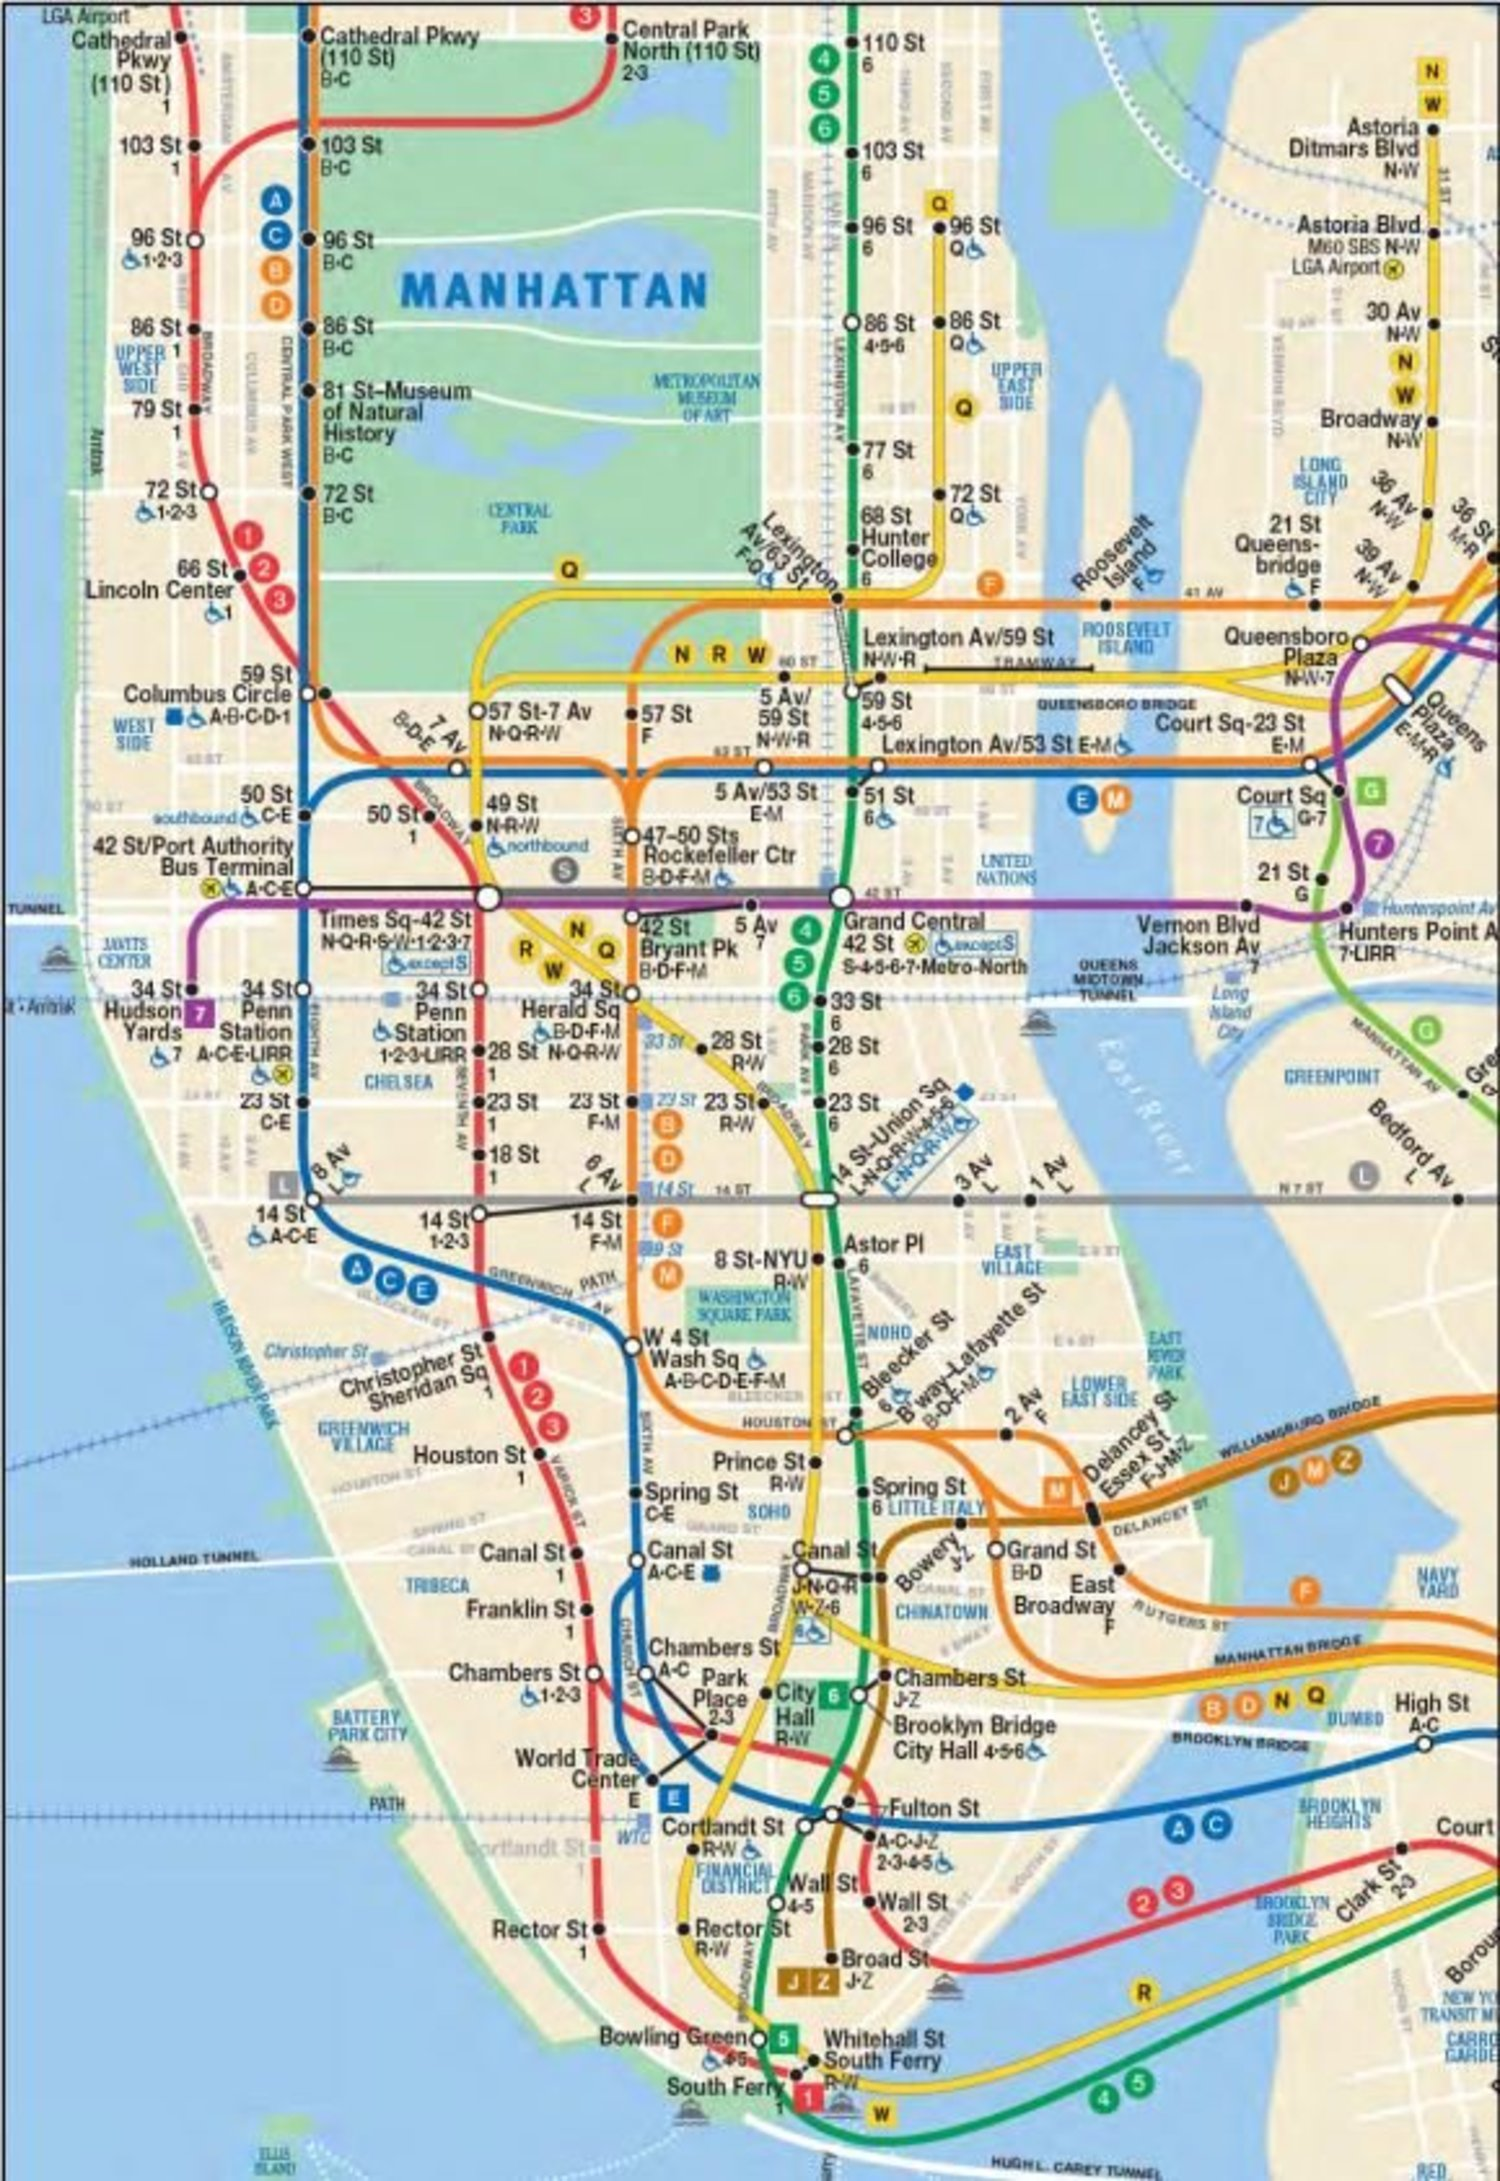 Here's what the subway map will look like with the 2nd Ave. Subway and restored W train. https://t.co/latFlJbOXW